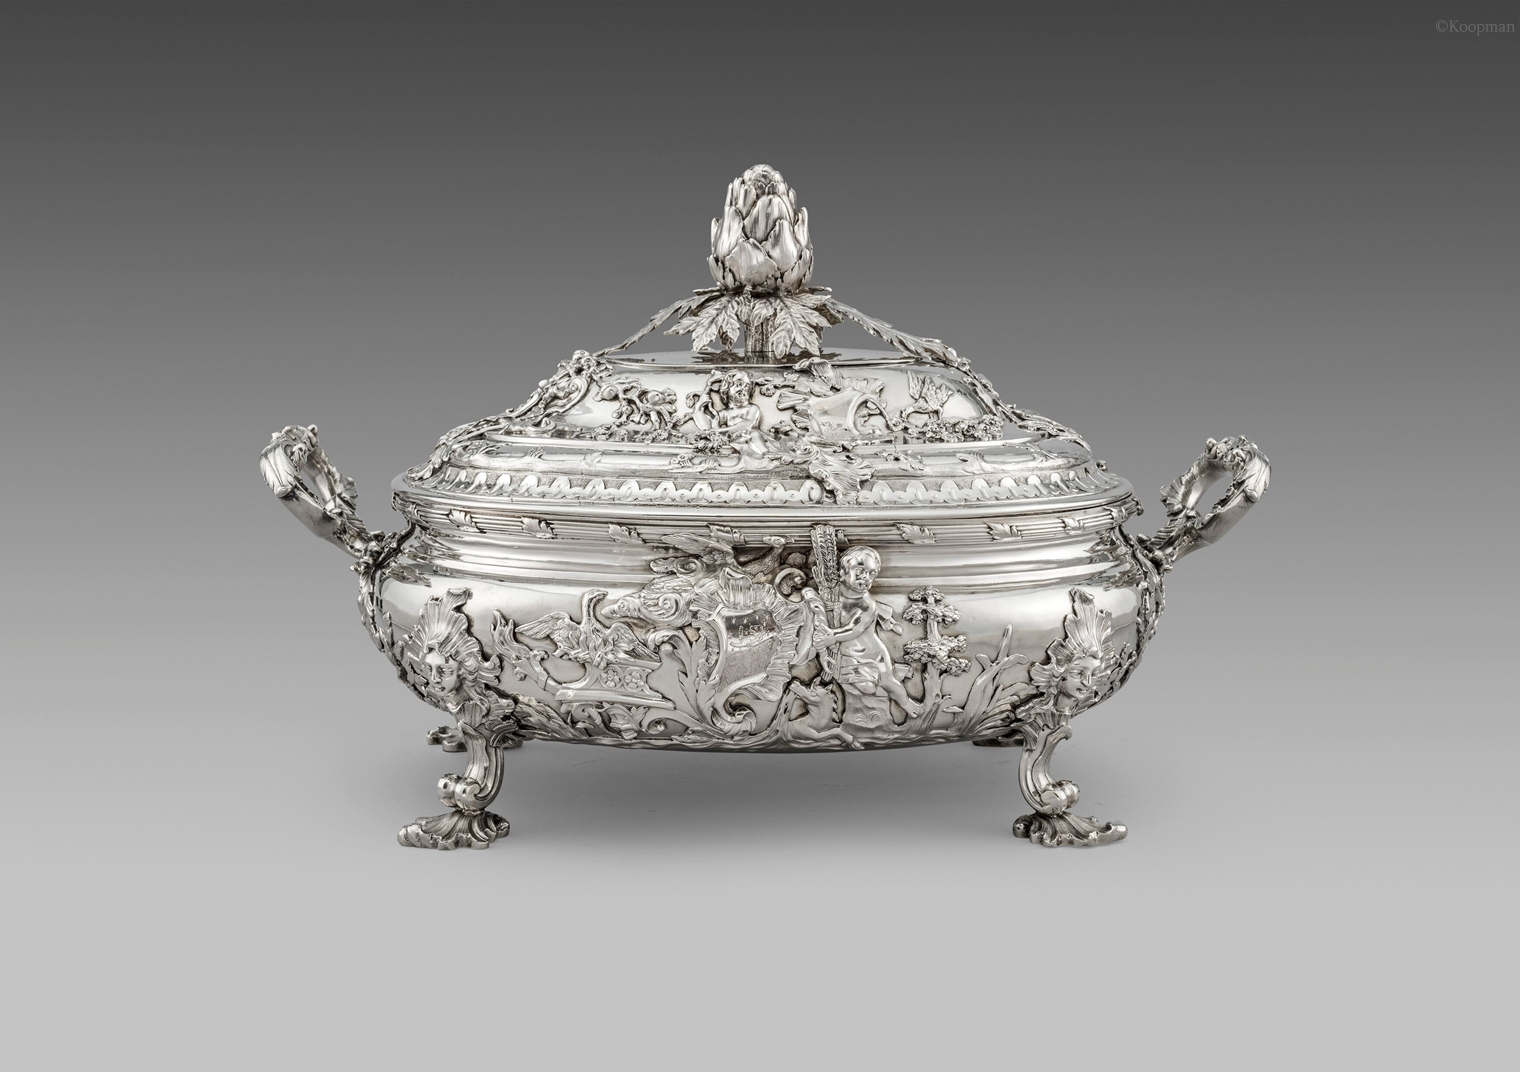 A Rococo Masterpiece - George II Soup Tureen